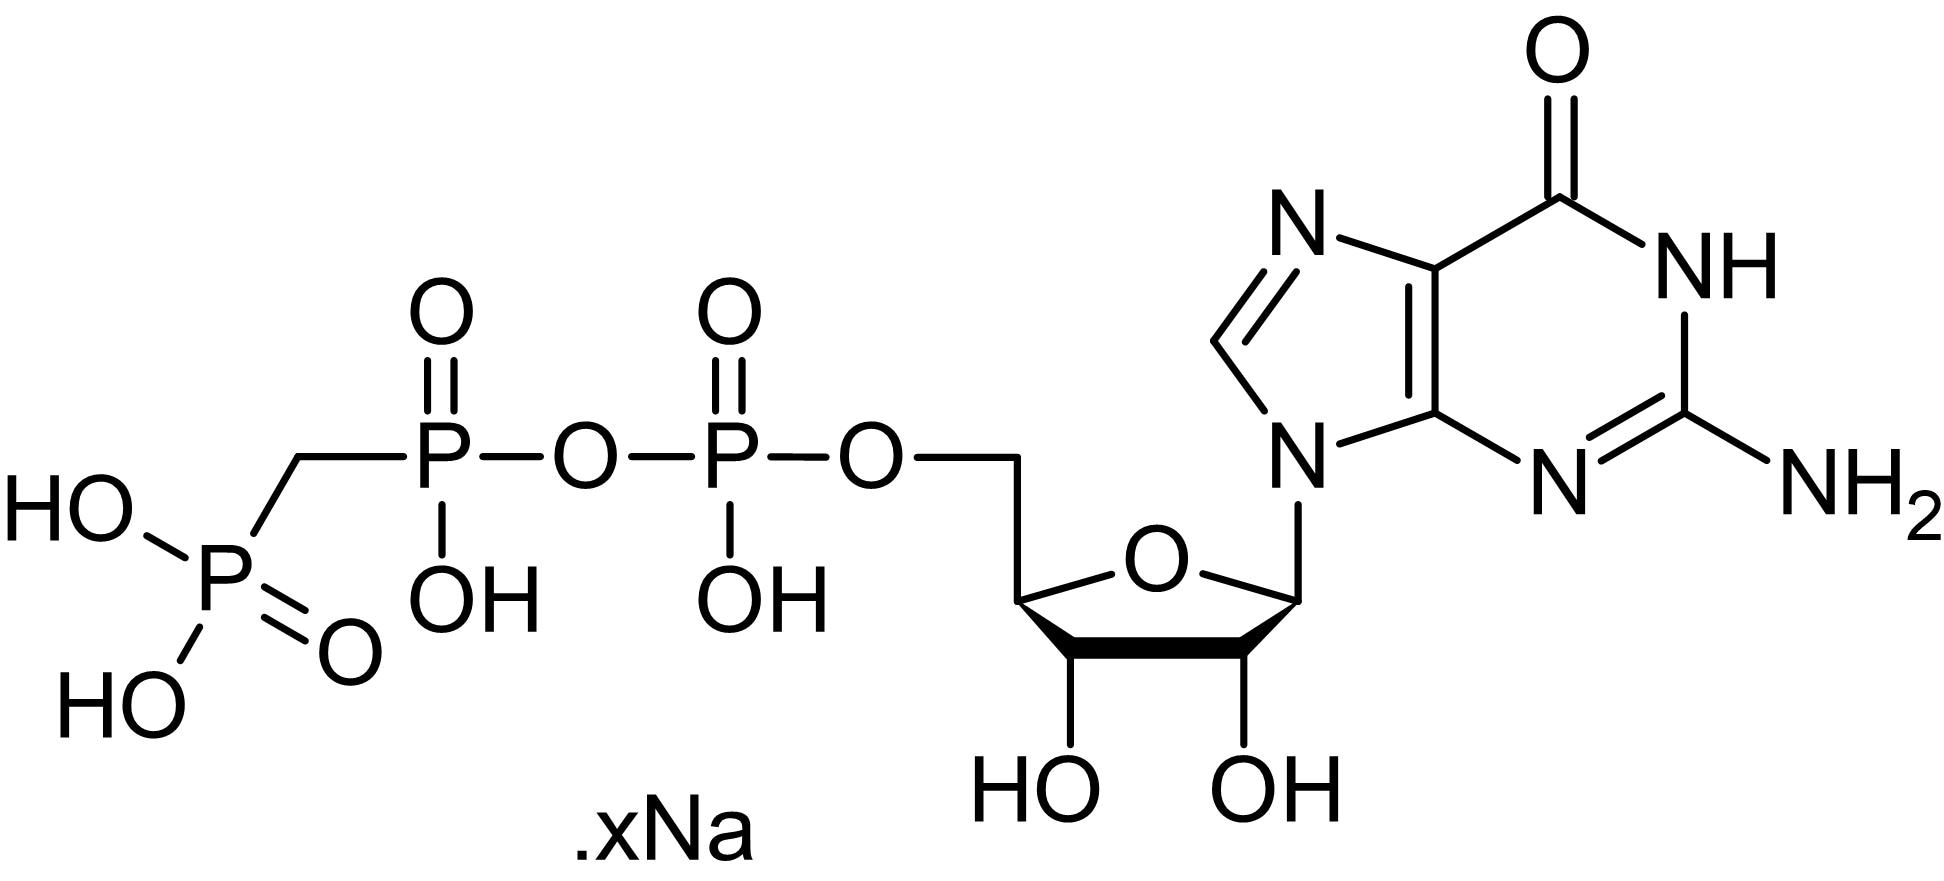 Chemical Structure - GppCp (GMPPCP), Nonhydrolyzable GTP analog (ab146660)